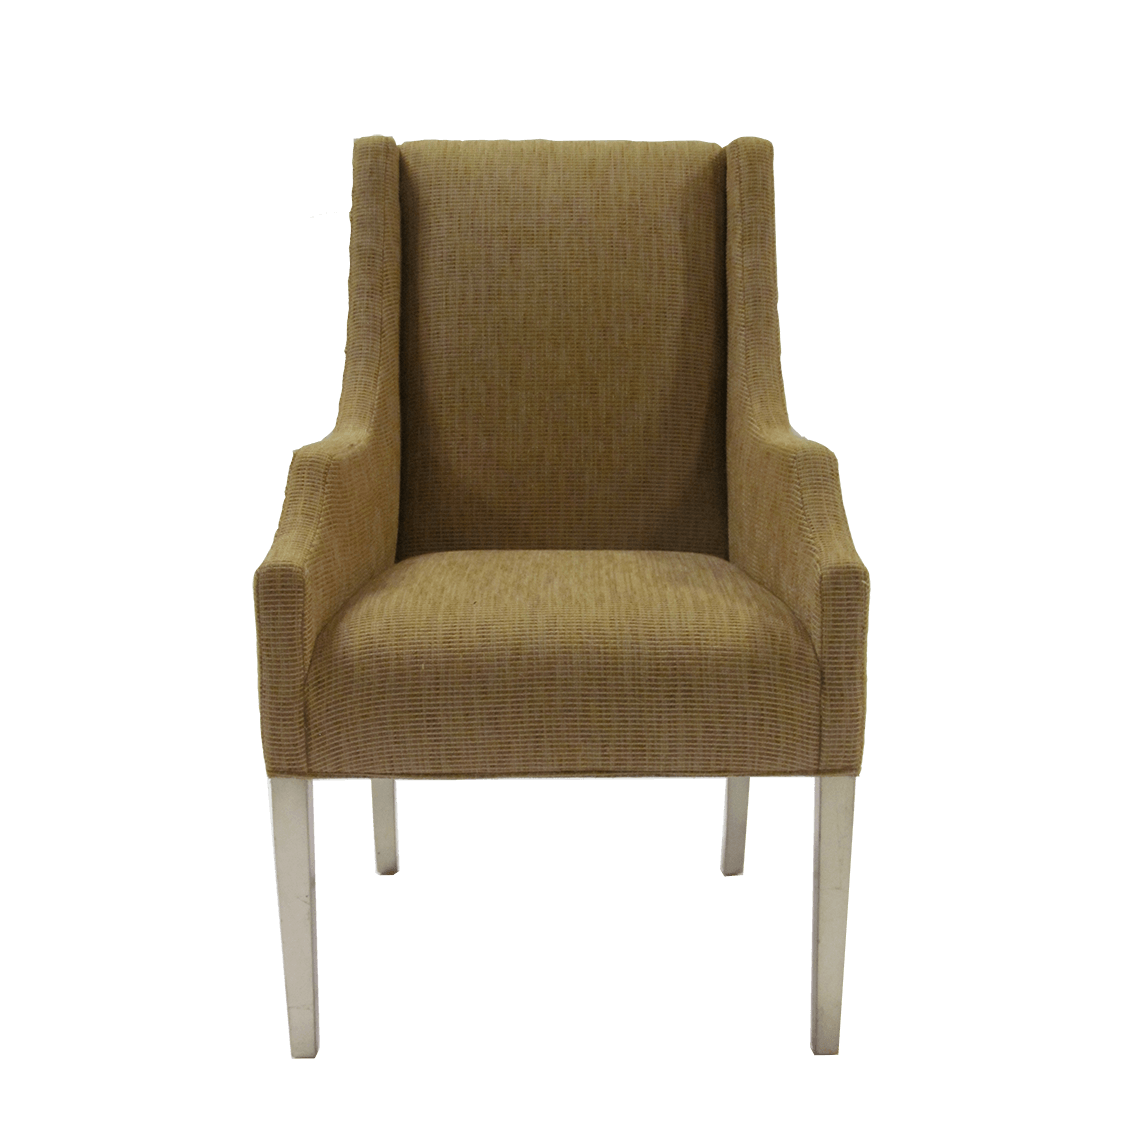 253364_Directional_of_N._Caroli_Arm_Chair